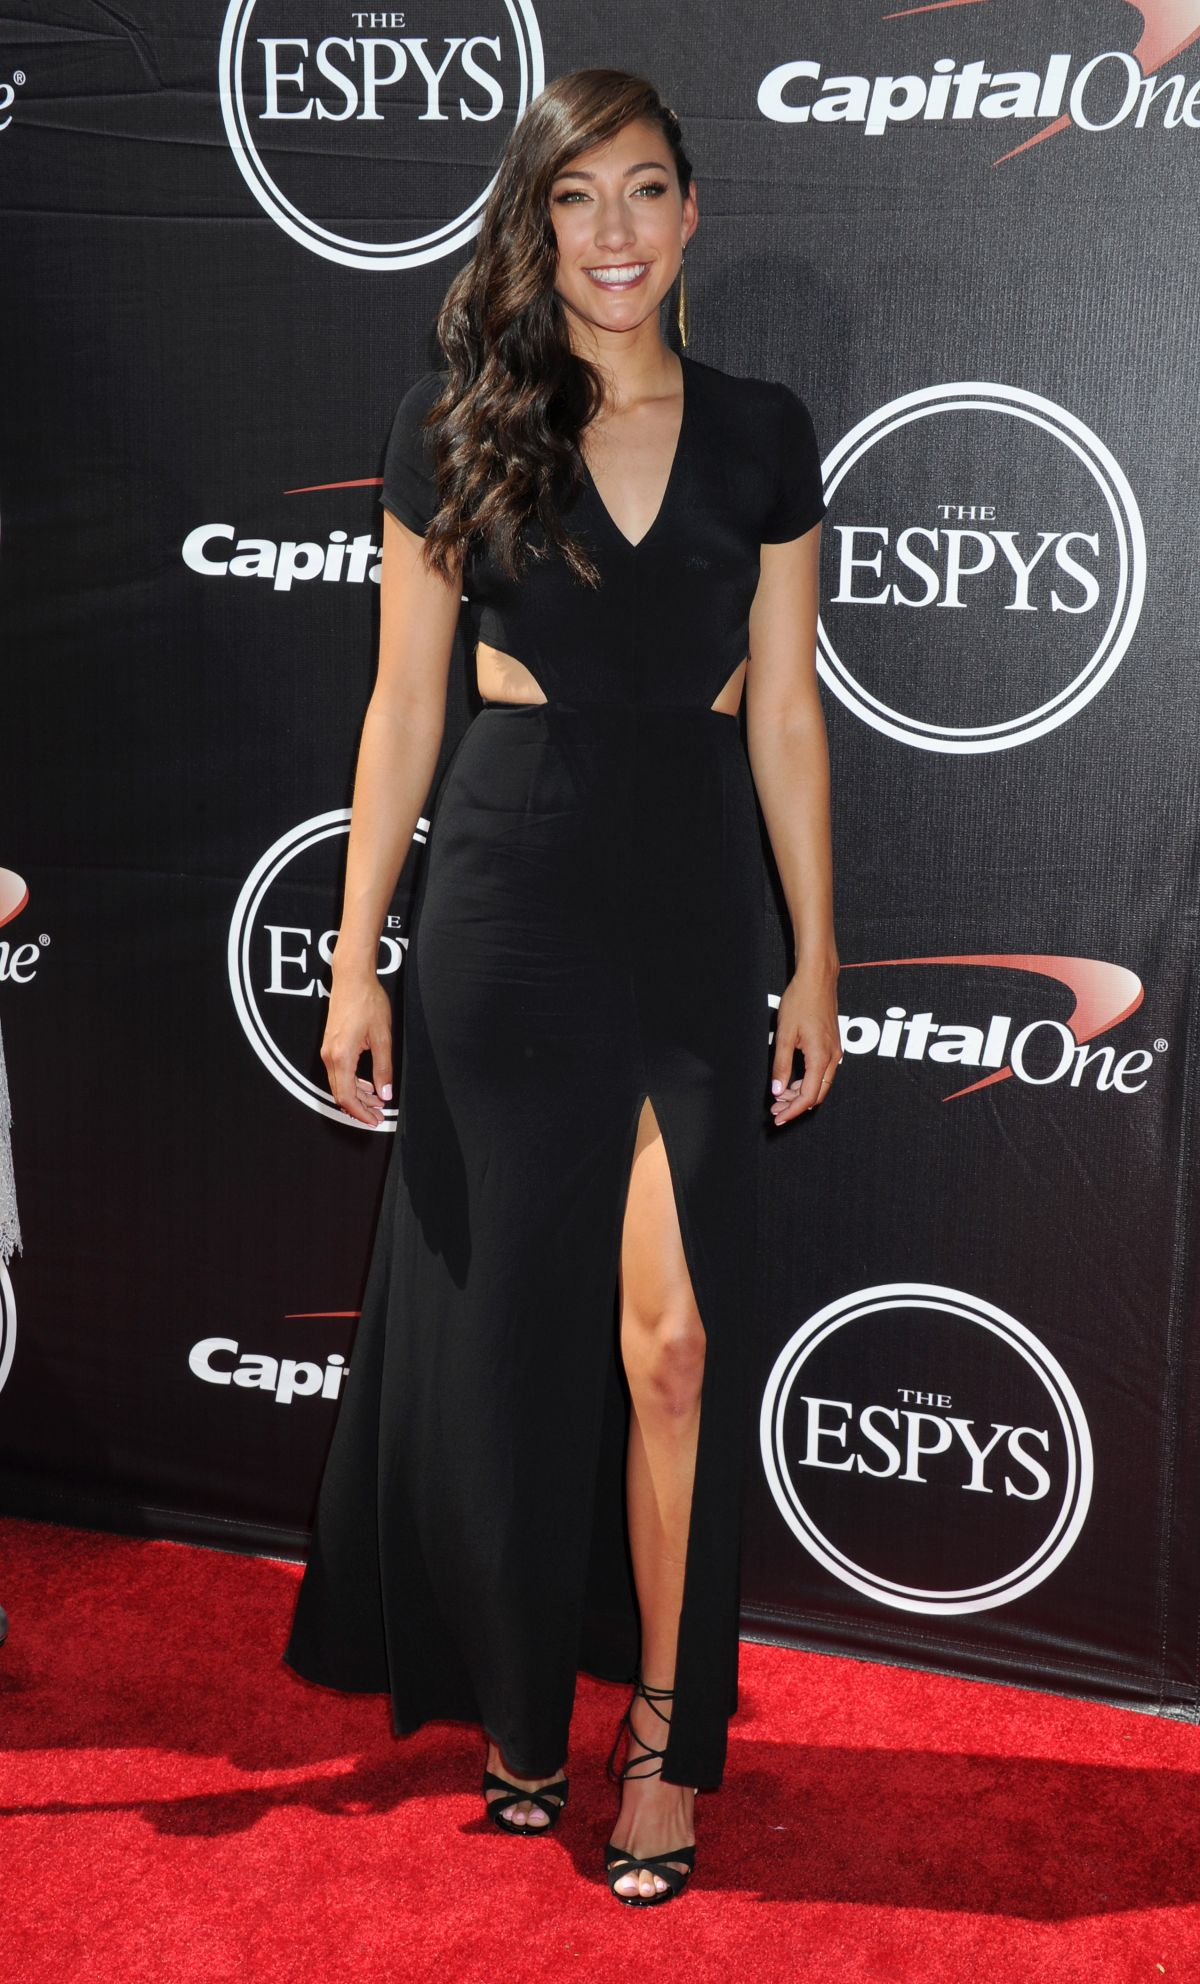 CHRISTEN PRESS at 2015 Espys Awards in Los Angeles